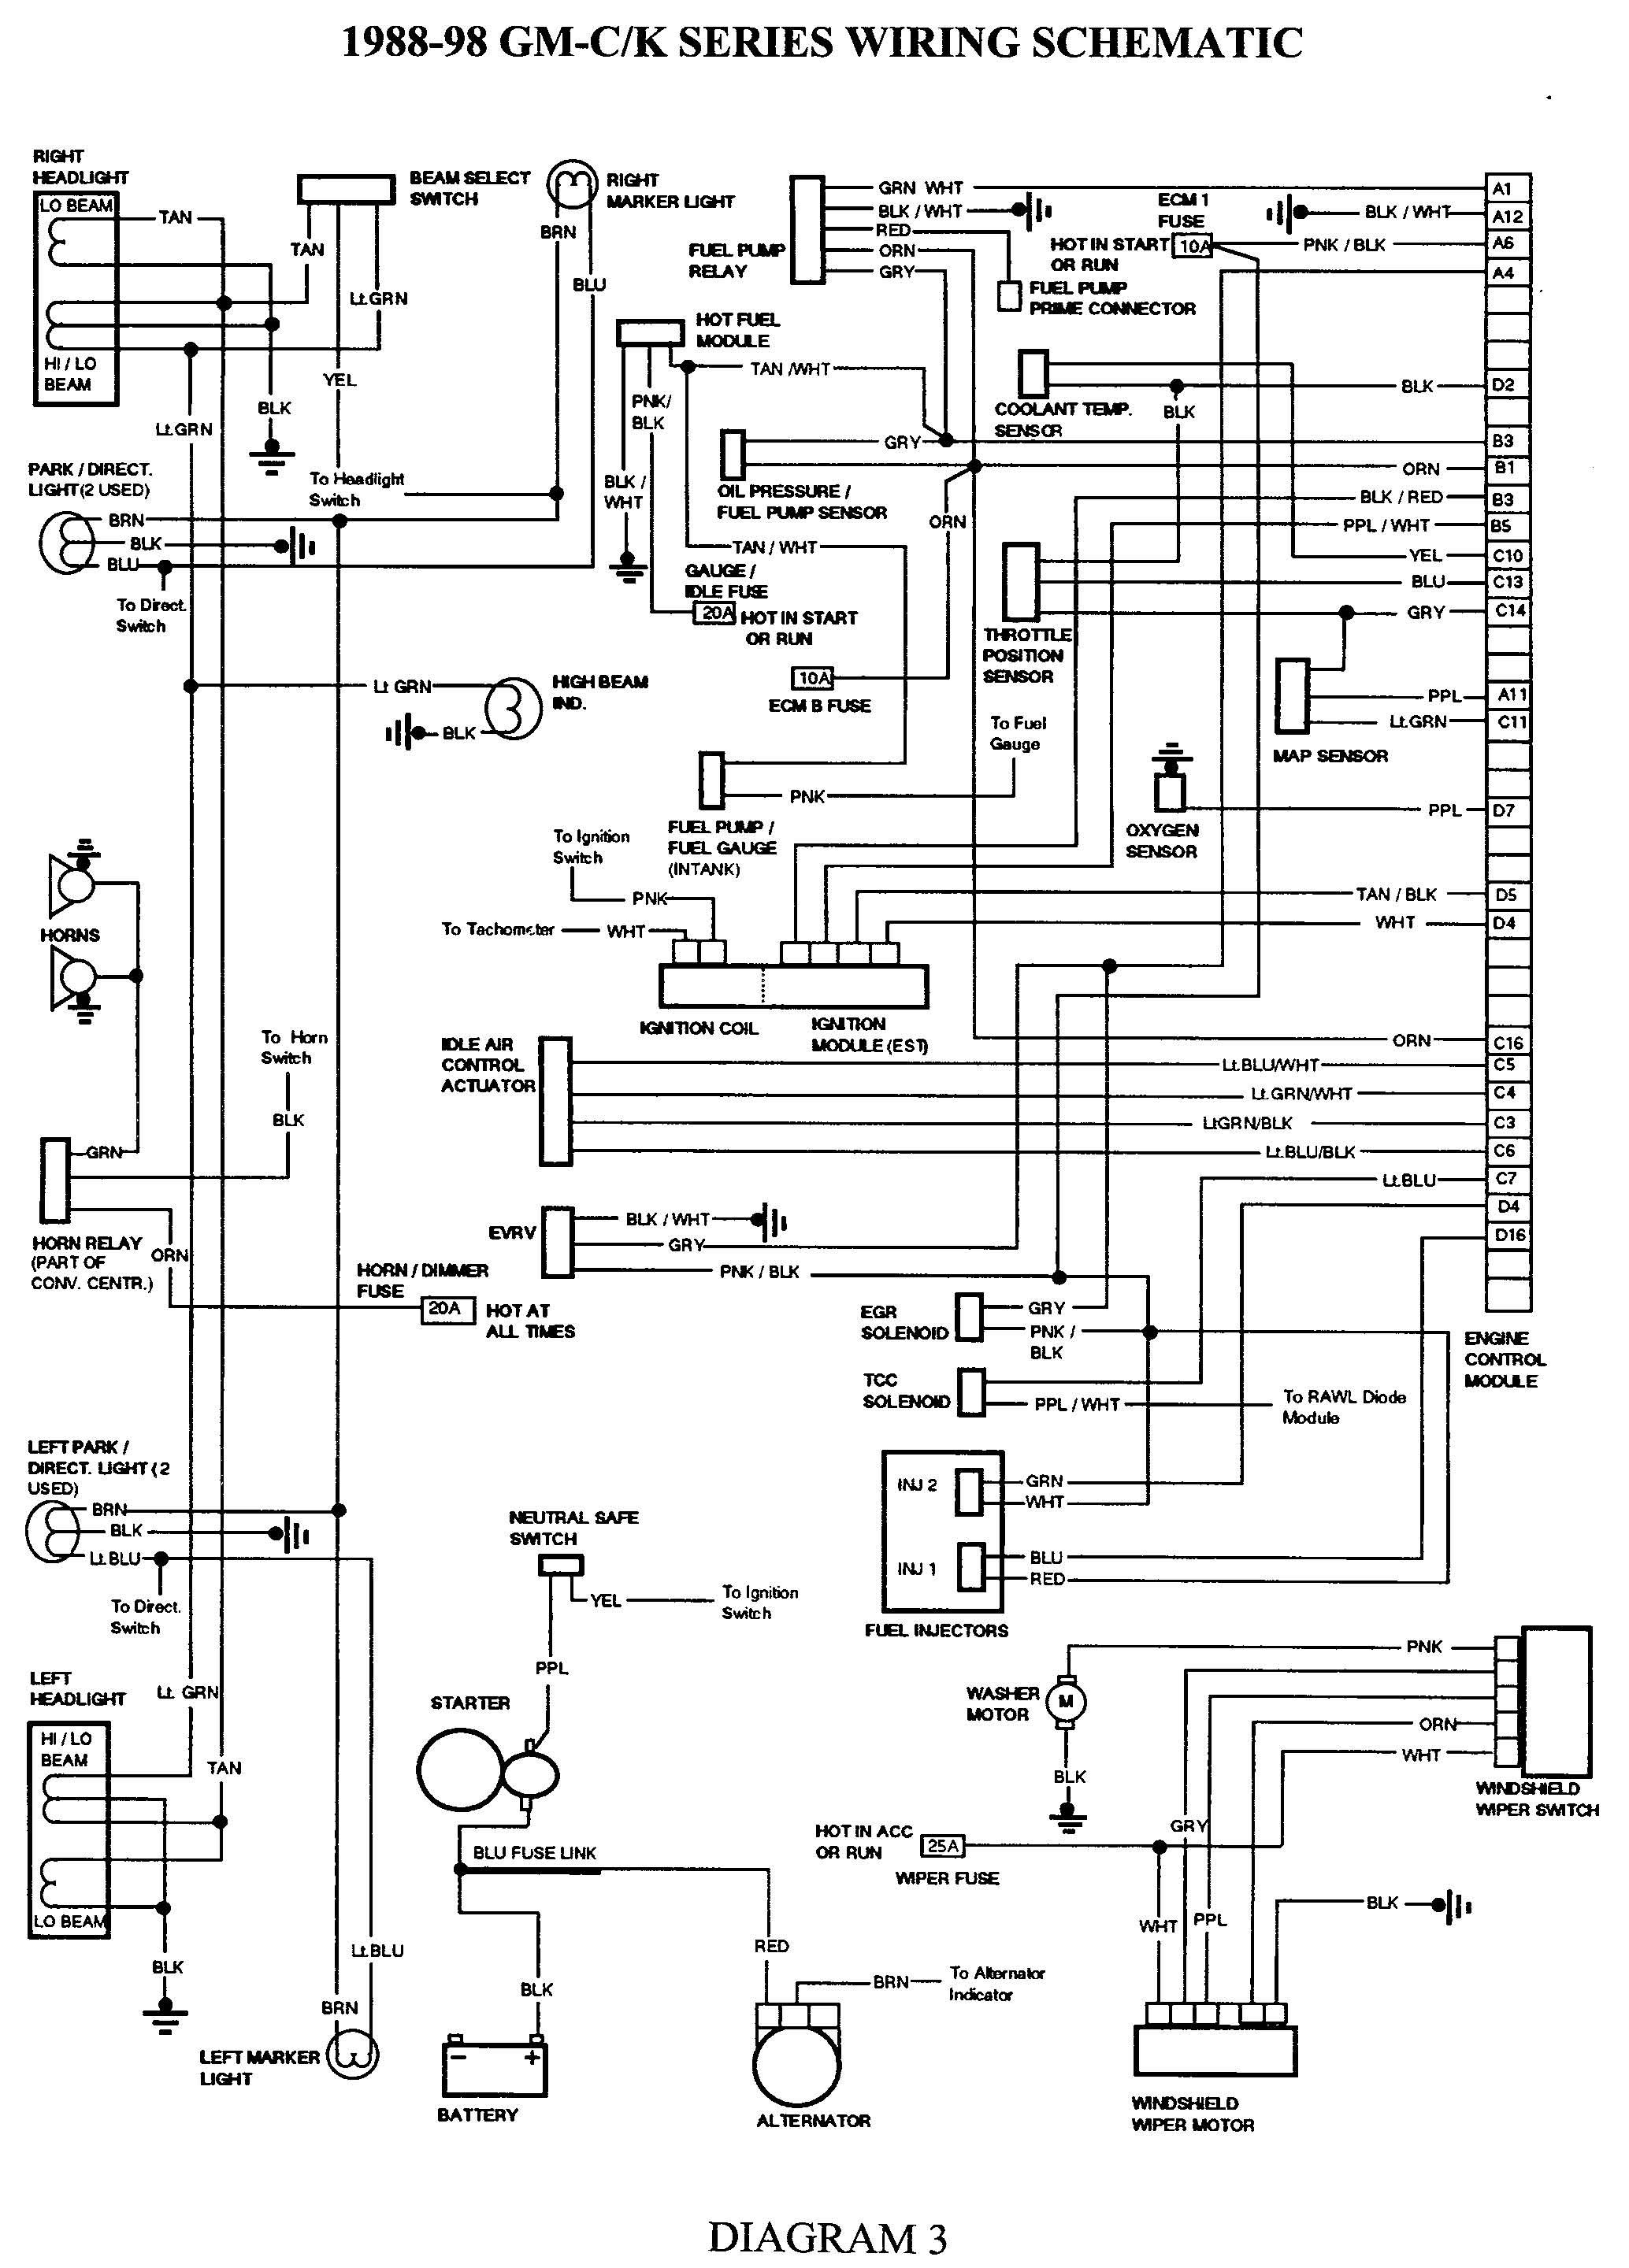 Gm 3 4 Wire Harness Diagram Wiring Diagram Schematics 1997 S10 Wiring  Diagram Chevy 4 3 Wiring Harness